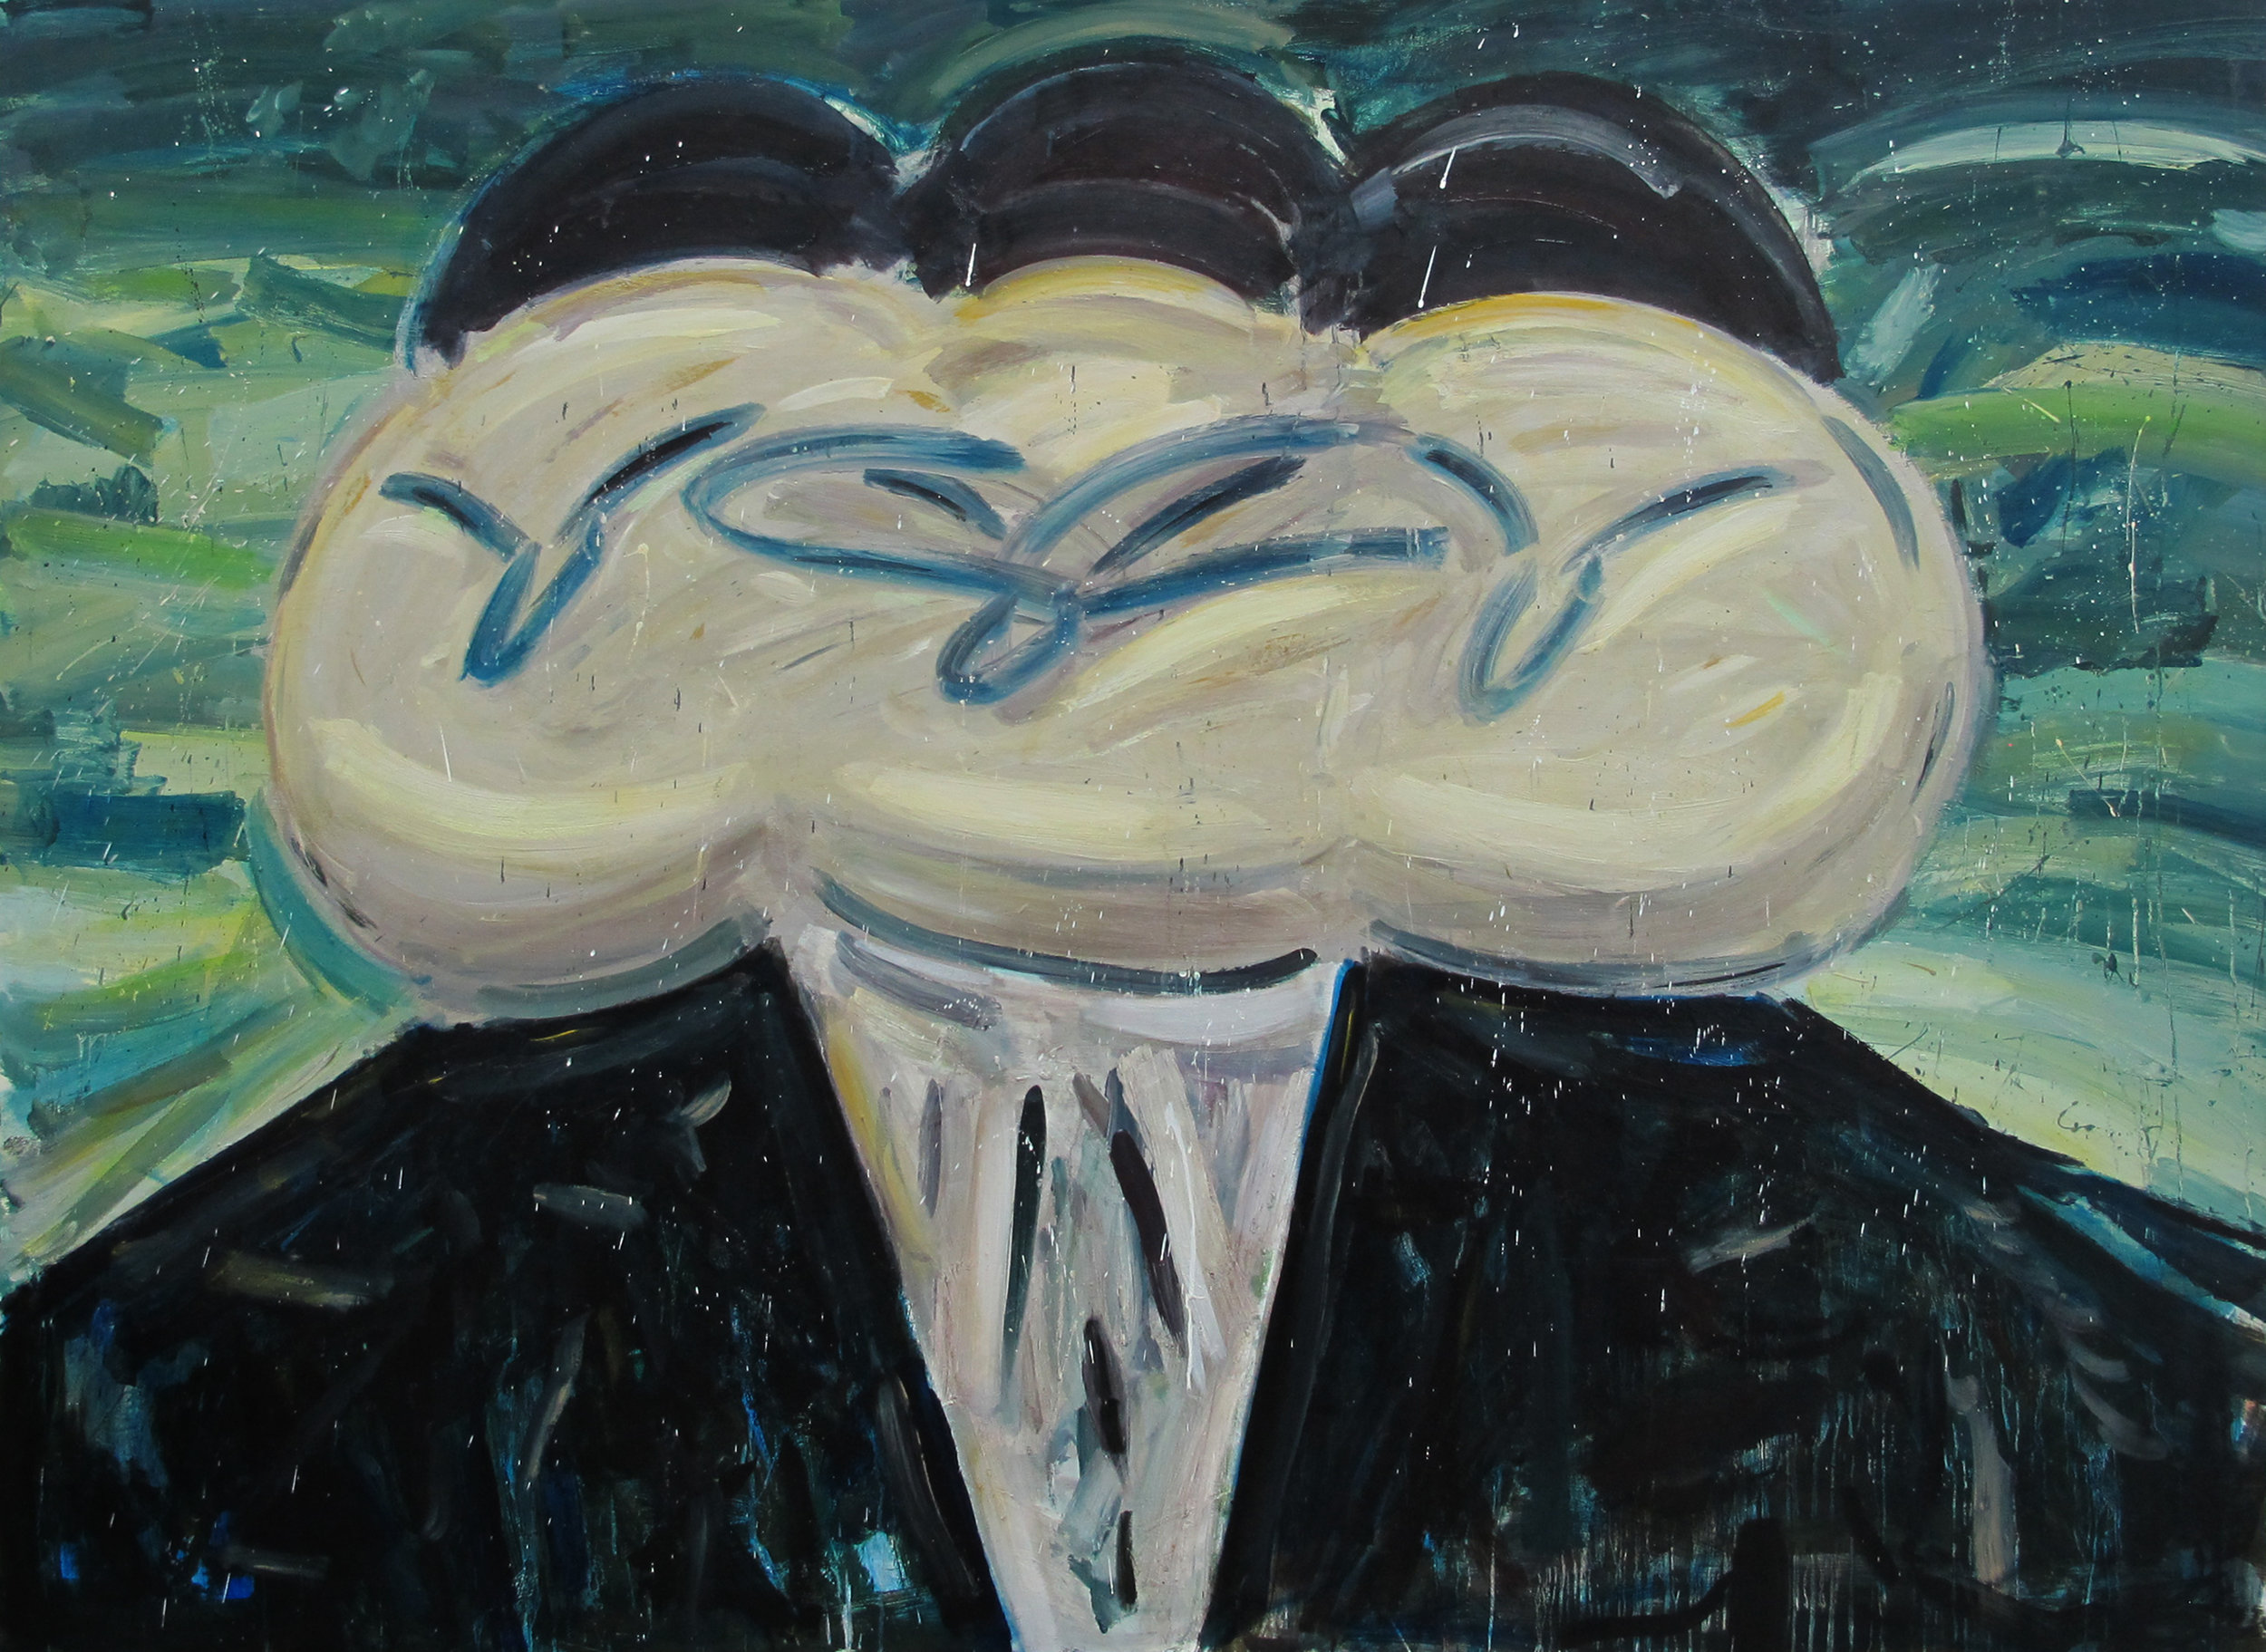 Amir Khojestah, Three Holy Heads #4, 2019 Oil on canvas 196 x 145 cm. Courtesy of the artist and Carbon 12